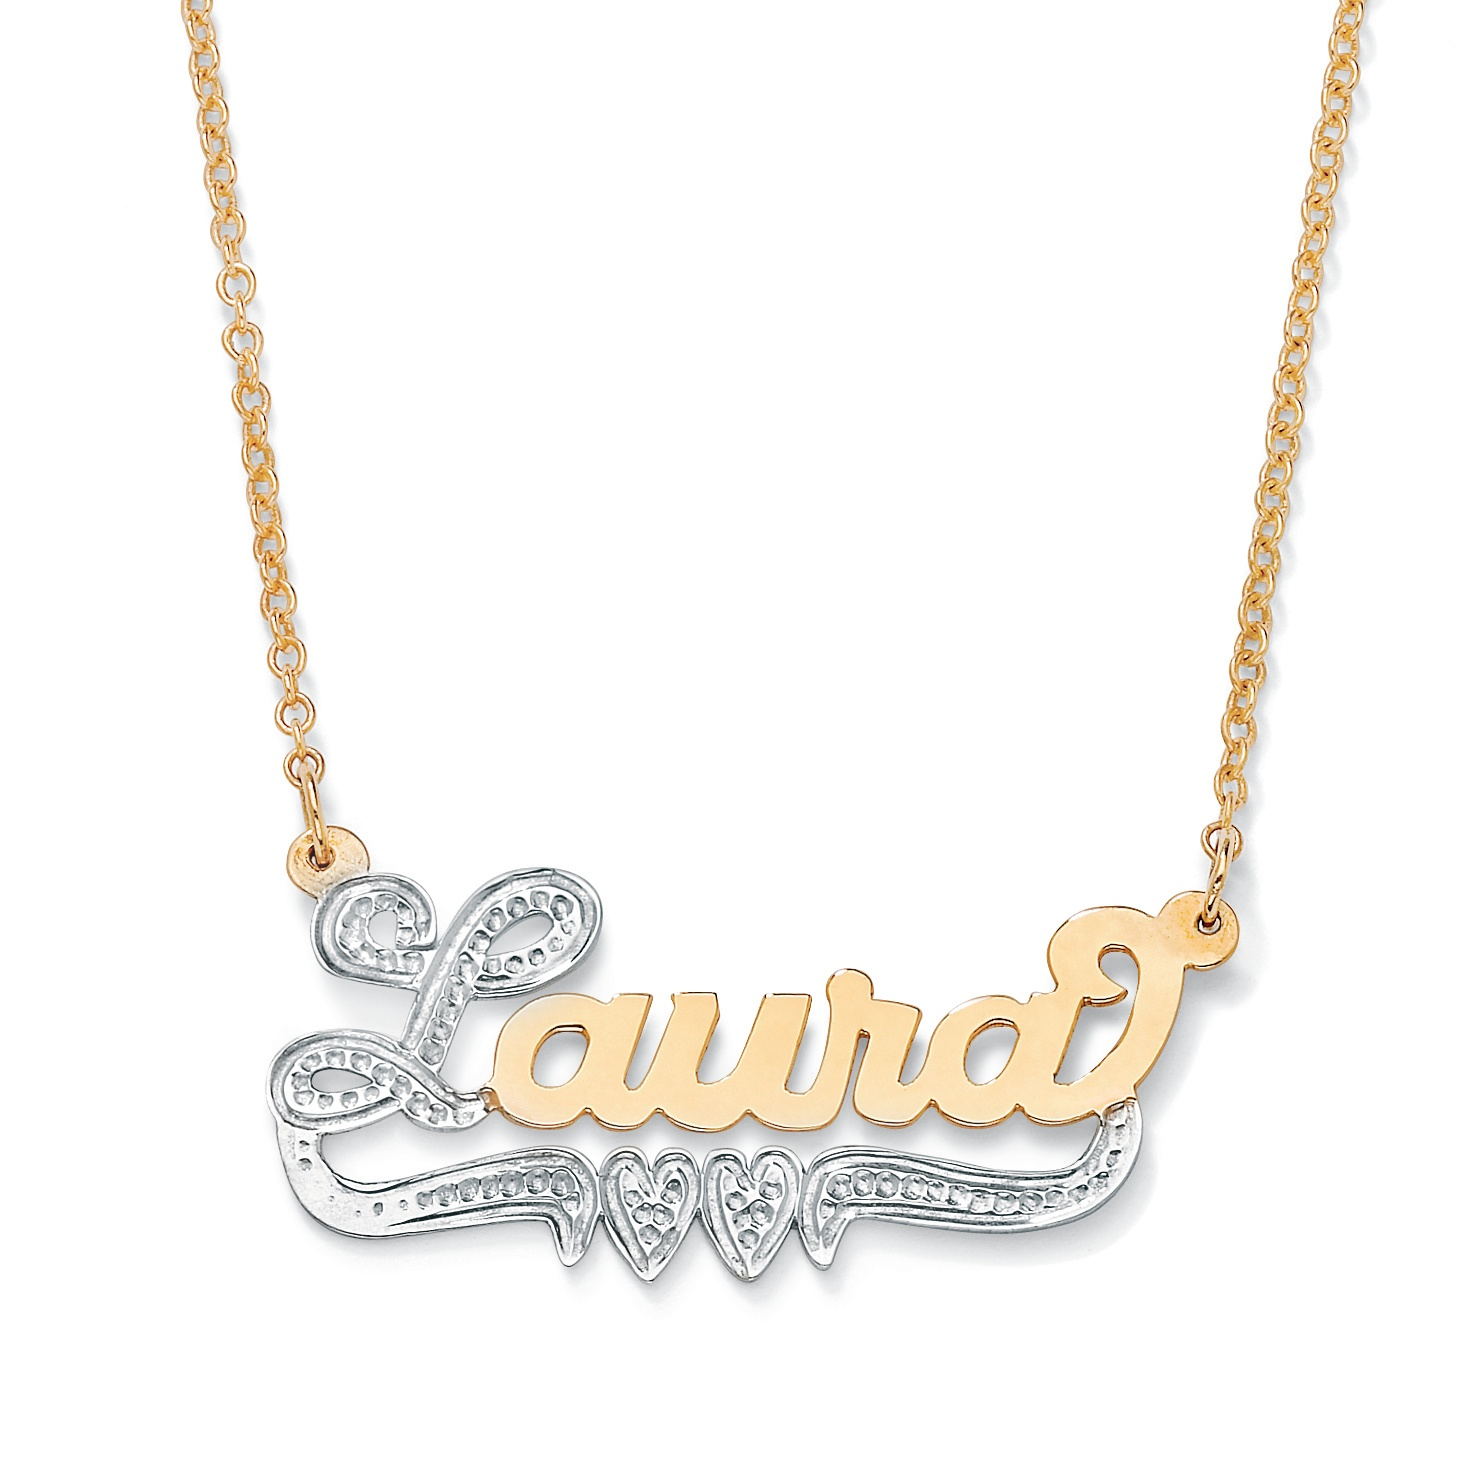 jewelry jewellery name img handstamped necklace necklaces handmade gold